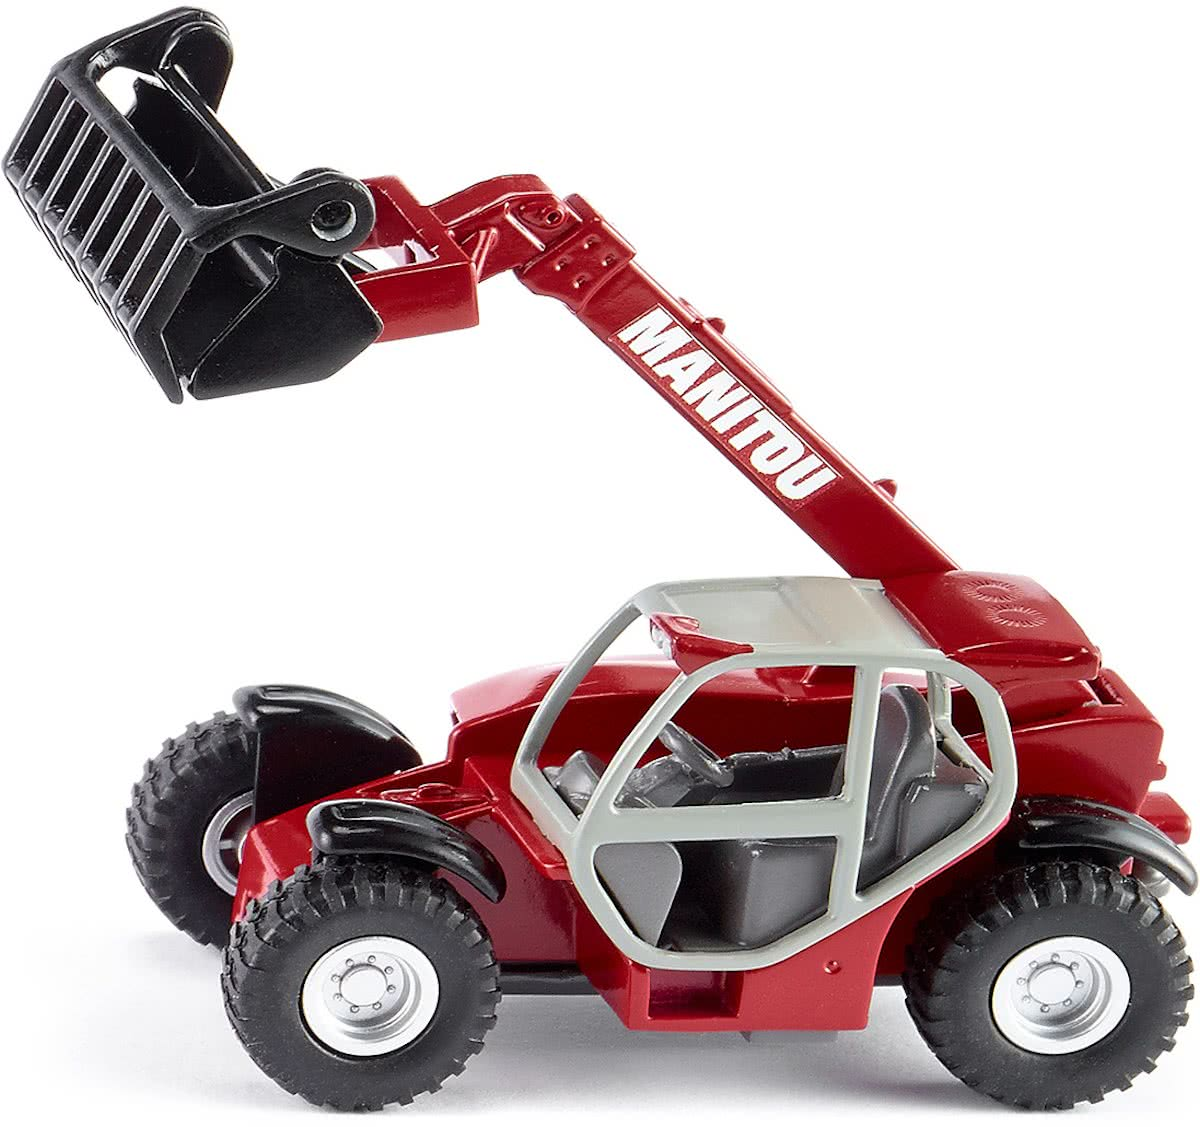 1482 Manitou Telescooplader